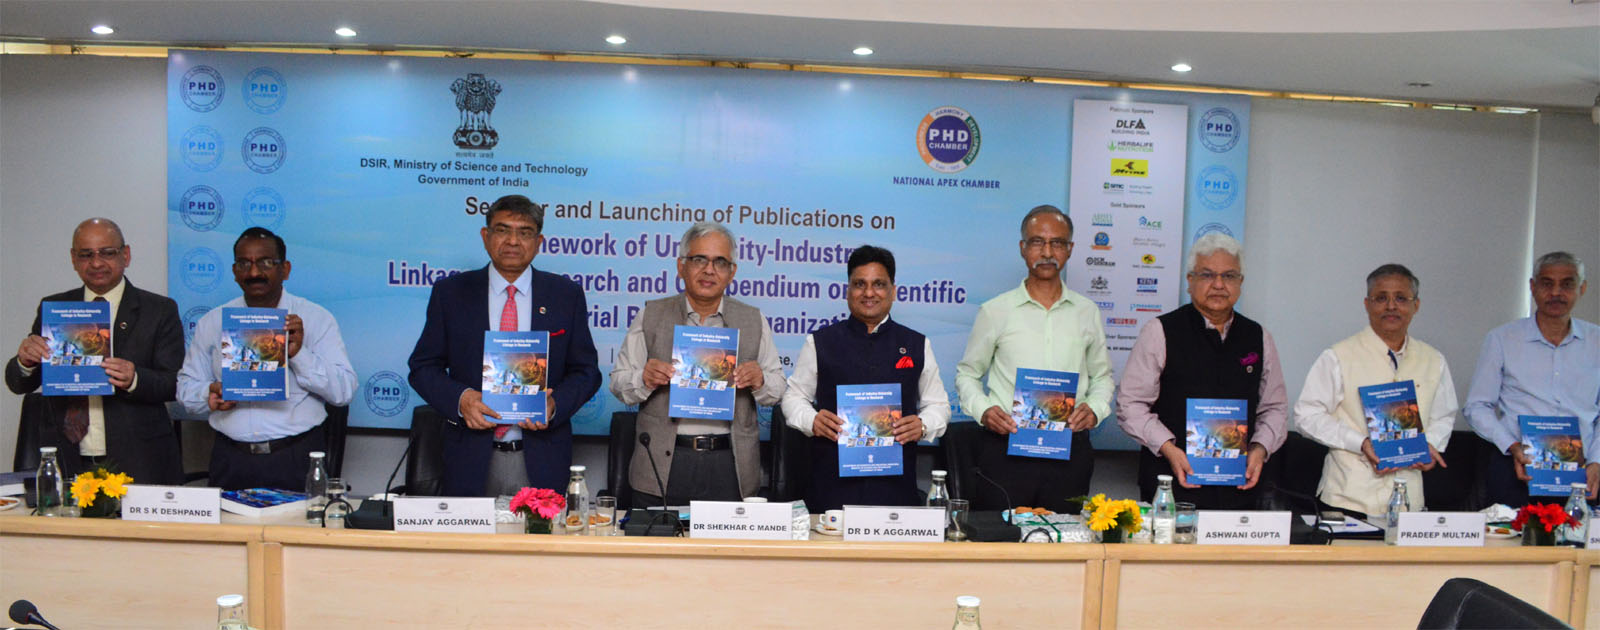 Seminar and Launching of Publications of Framework of University-Industry Linkages in Research